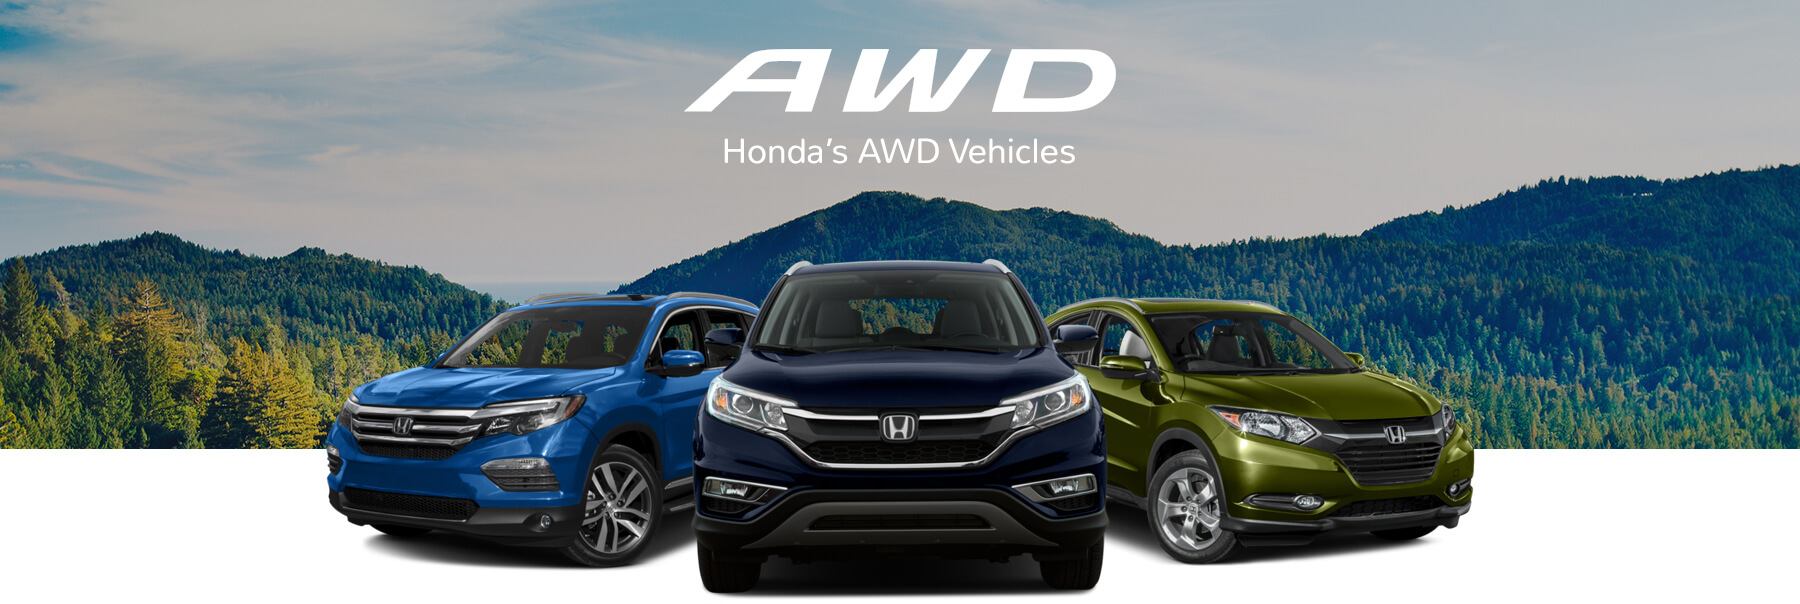 Honda AWD Vehicles